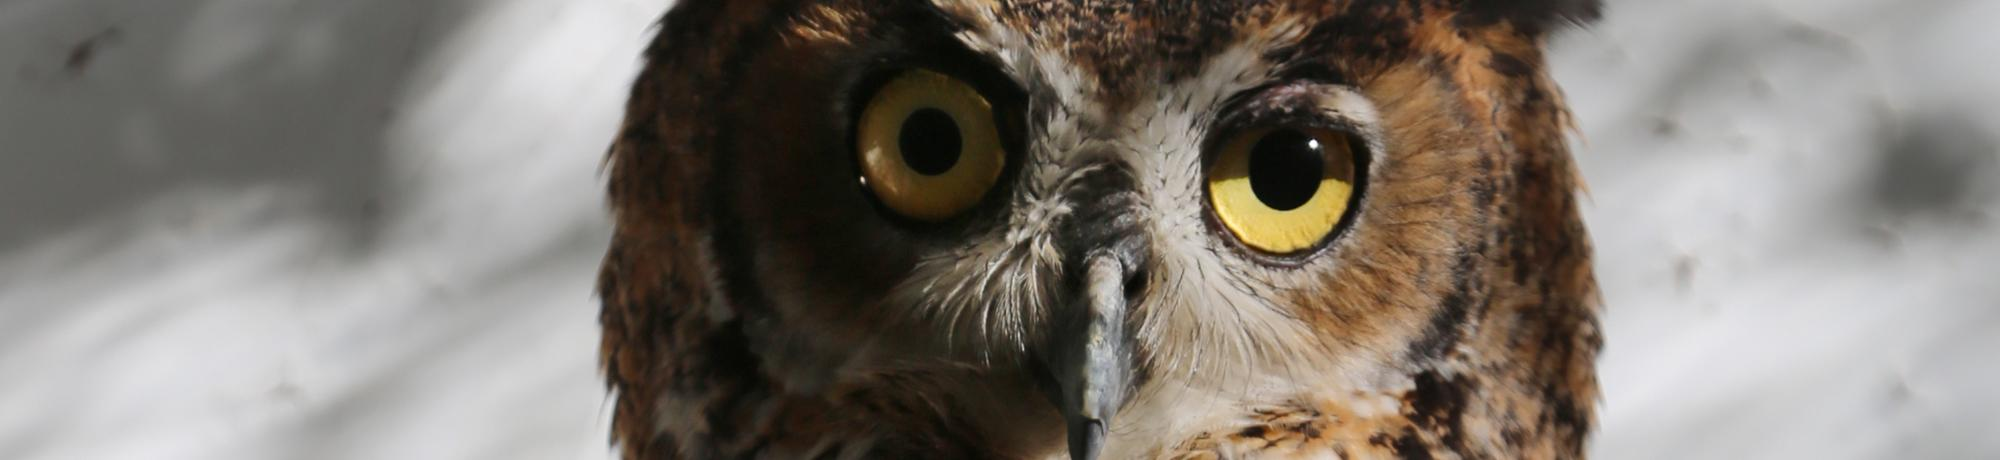 Mad-Eye is a great horned owl